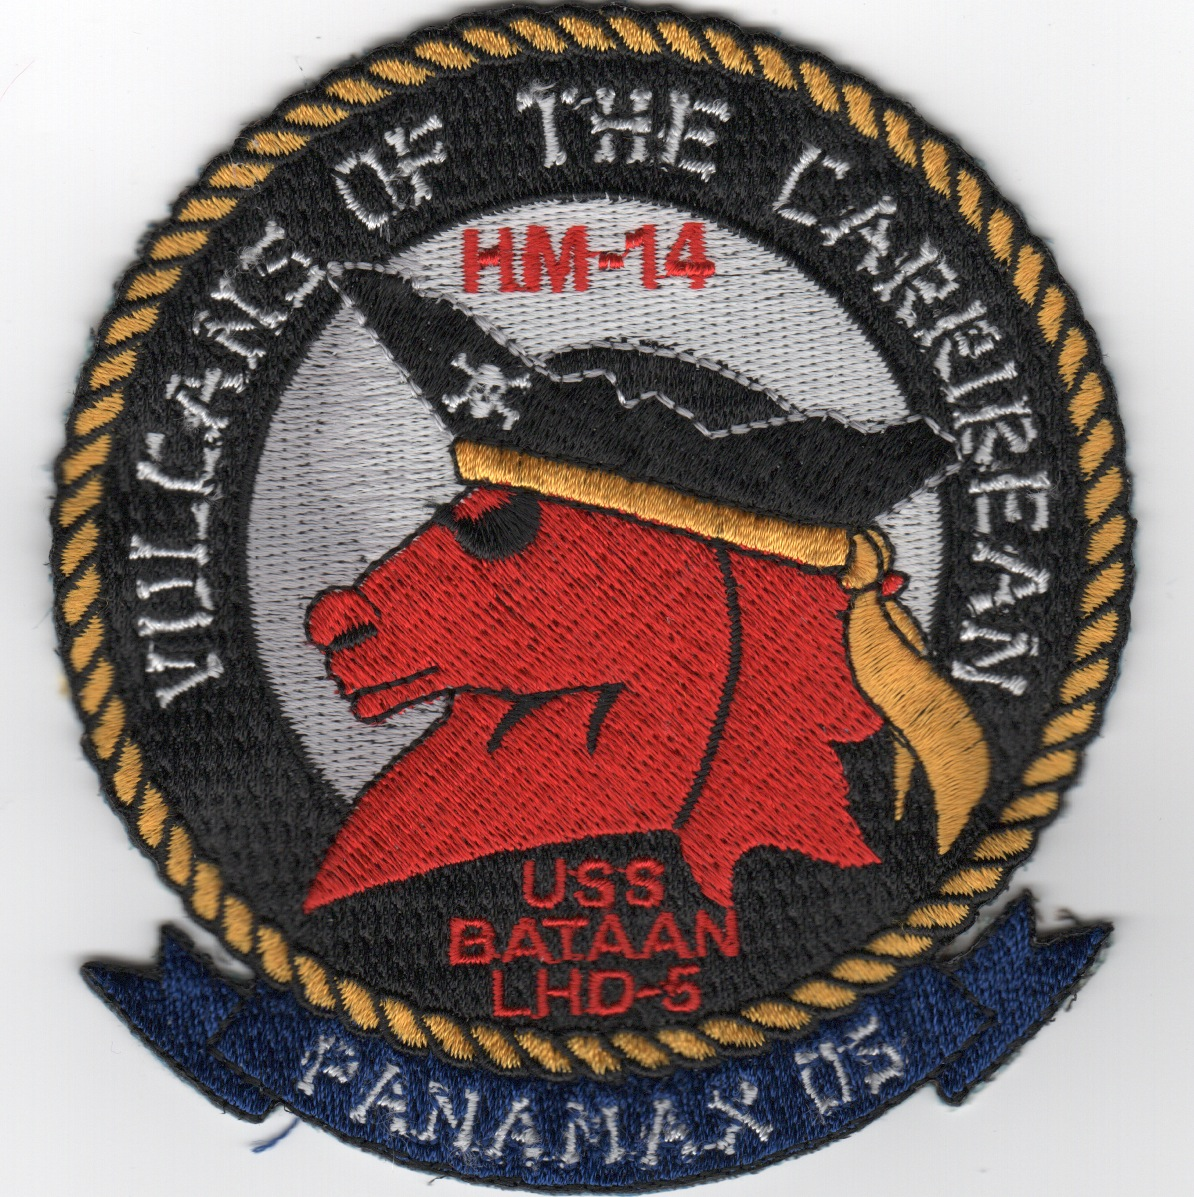 HM-14 2005 'Villains of the Carribean' Patch